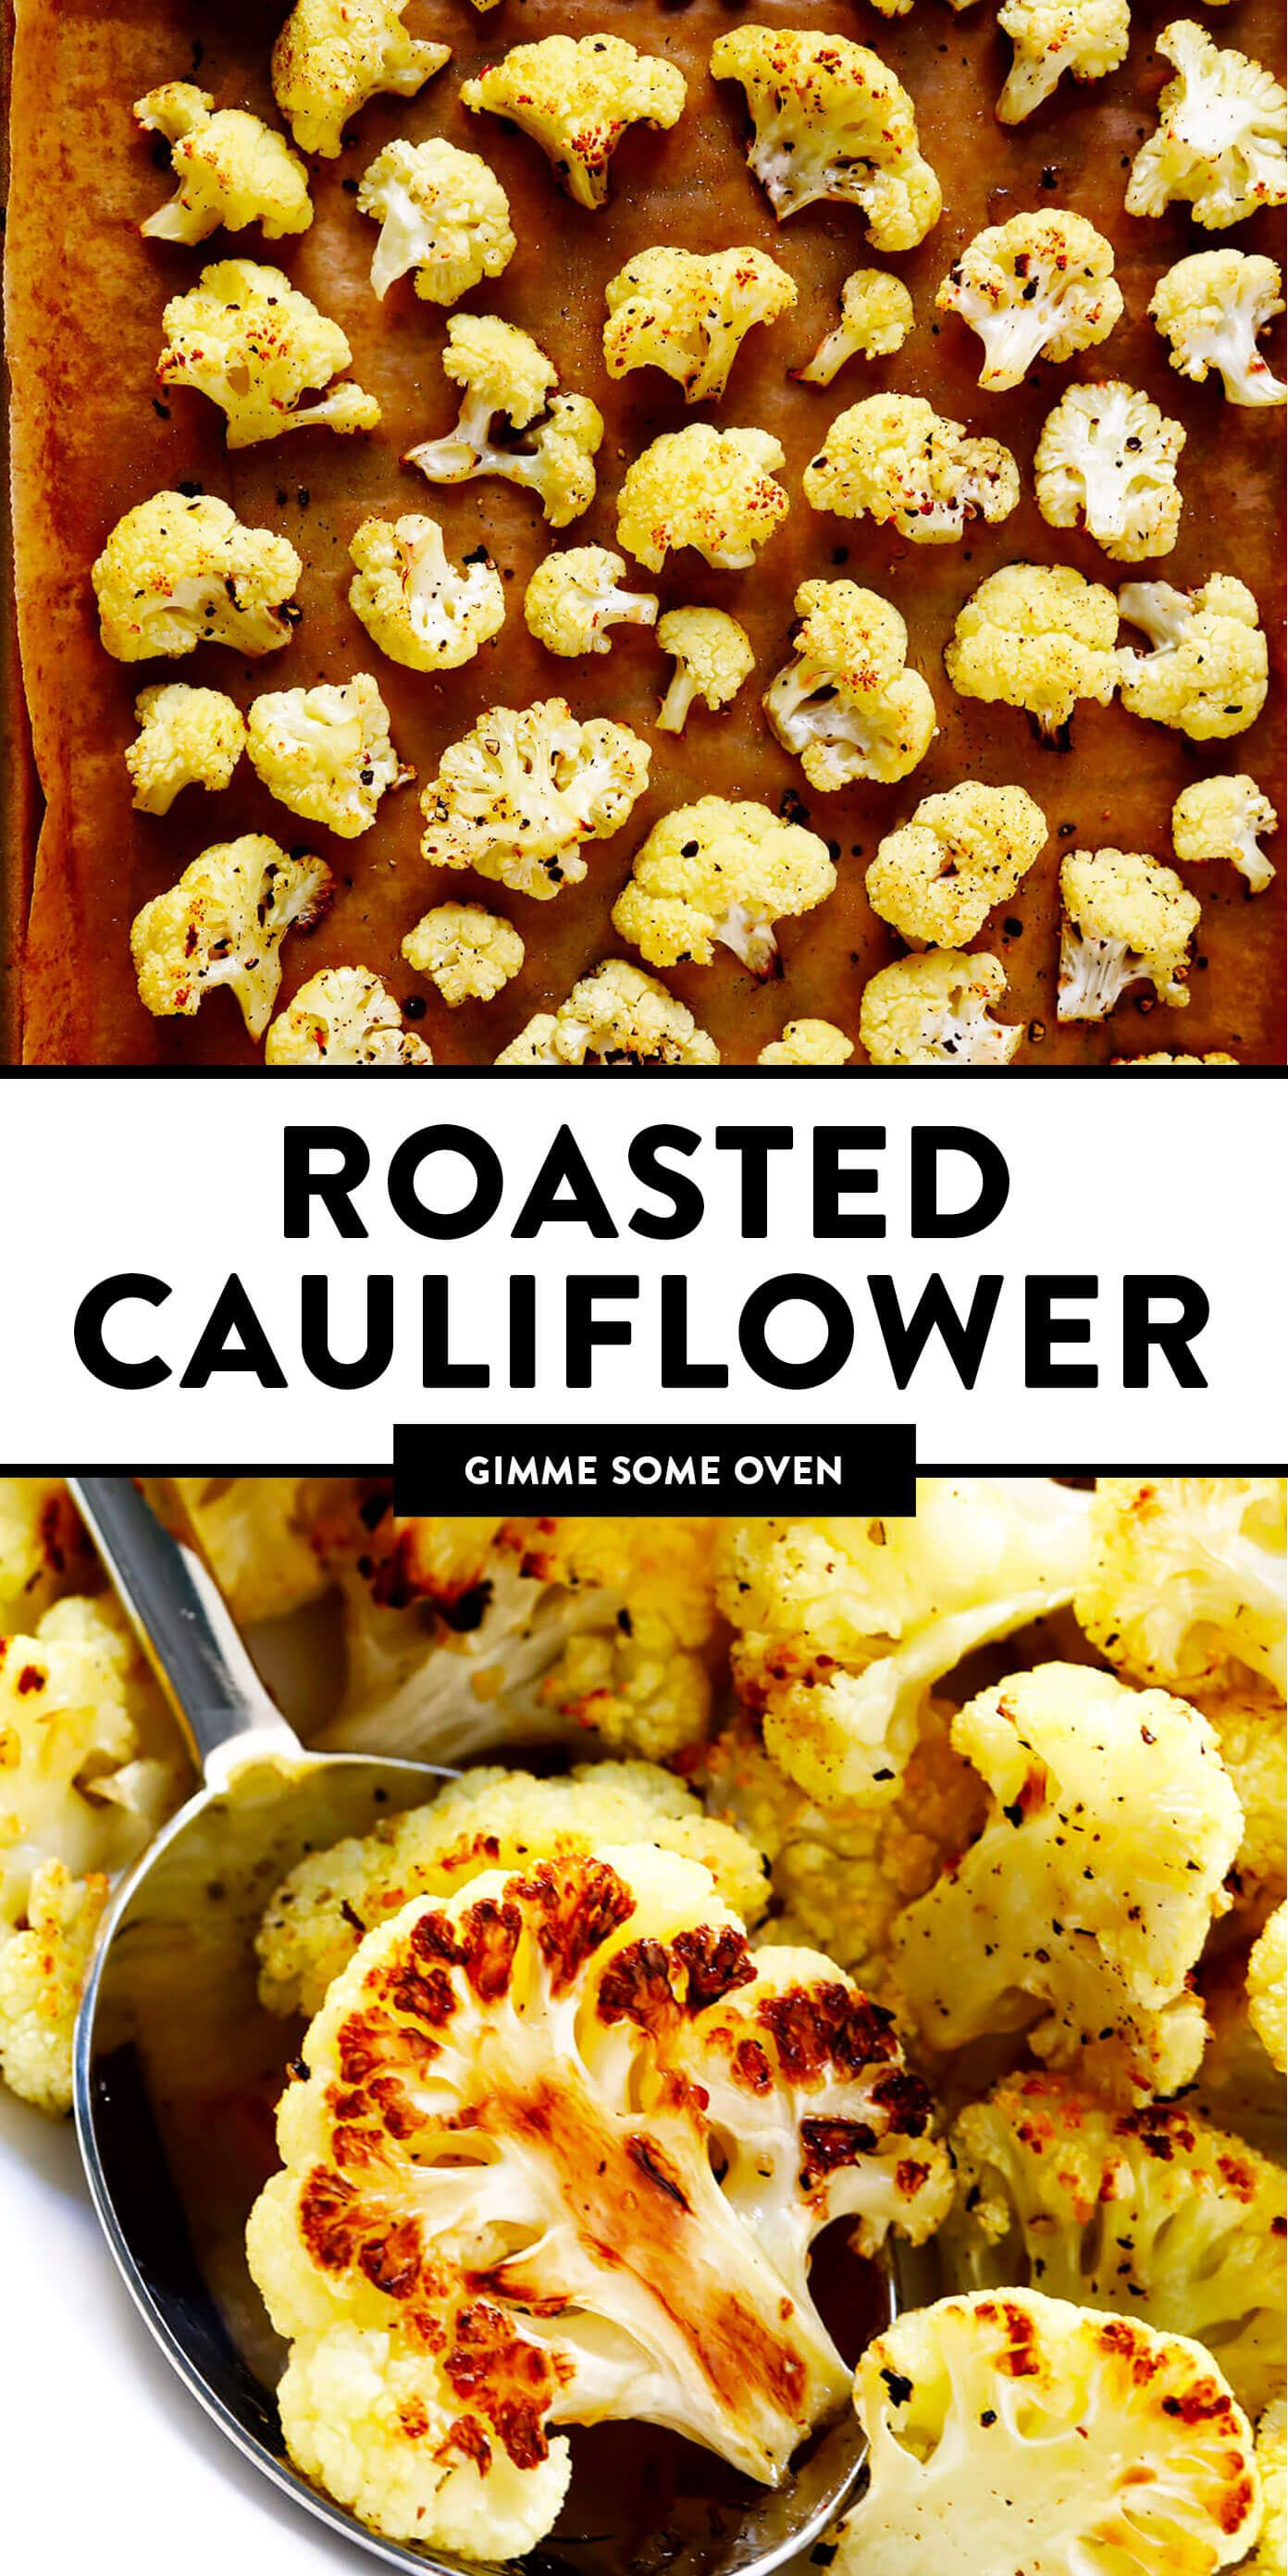 Roasted Cauliflower Gimme Some Oven Recipe In 2020 Roasted Cauliflower Recipes Roasted Cauliflower Recipes